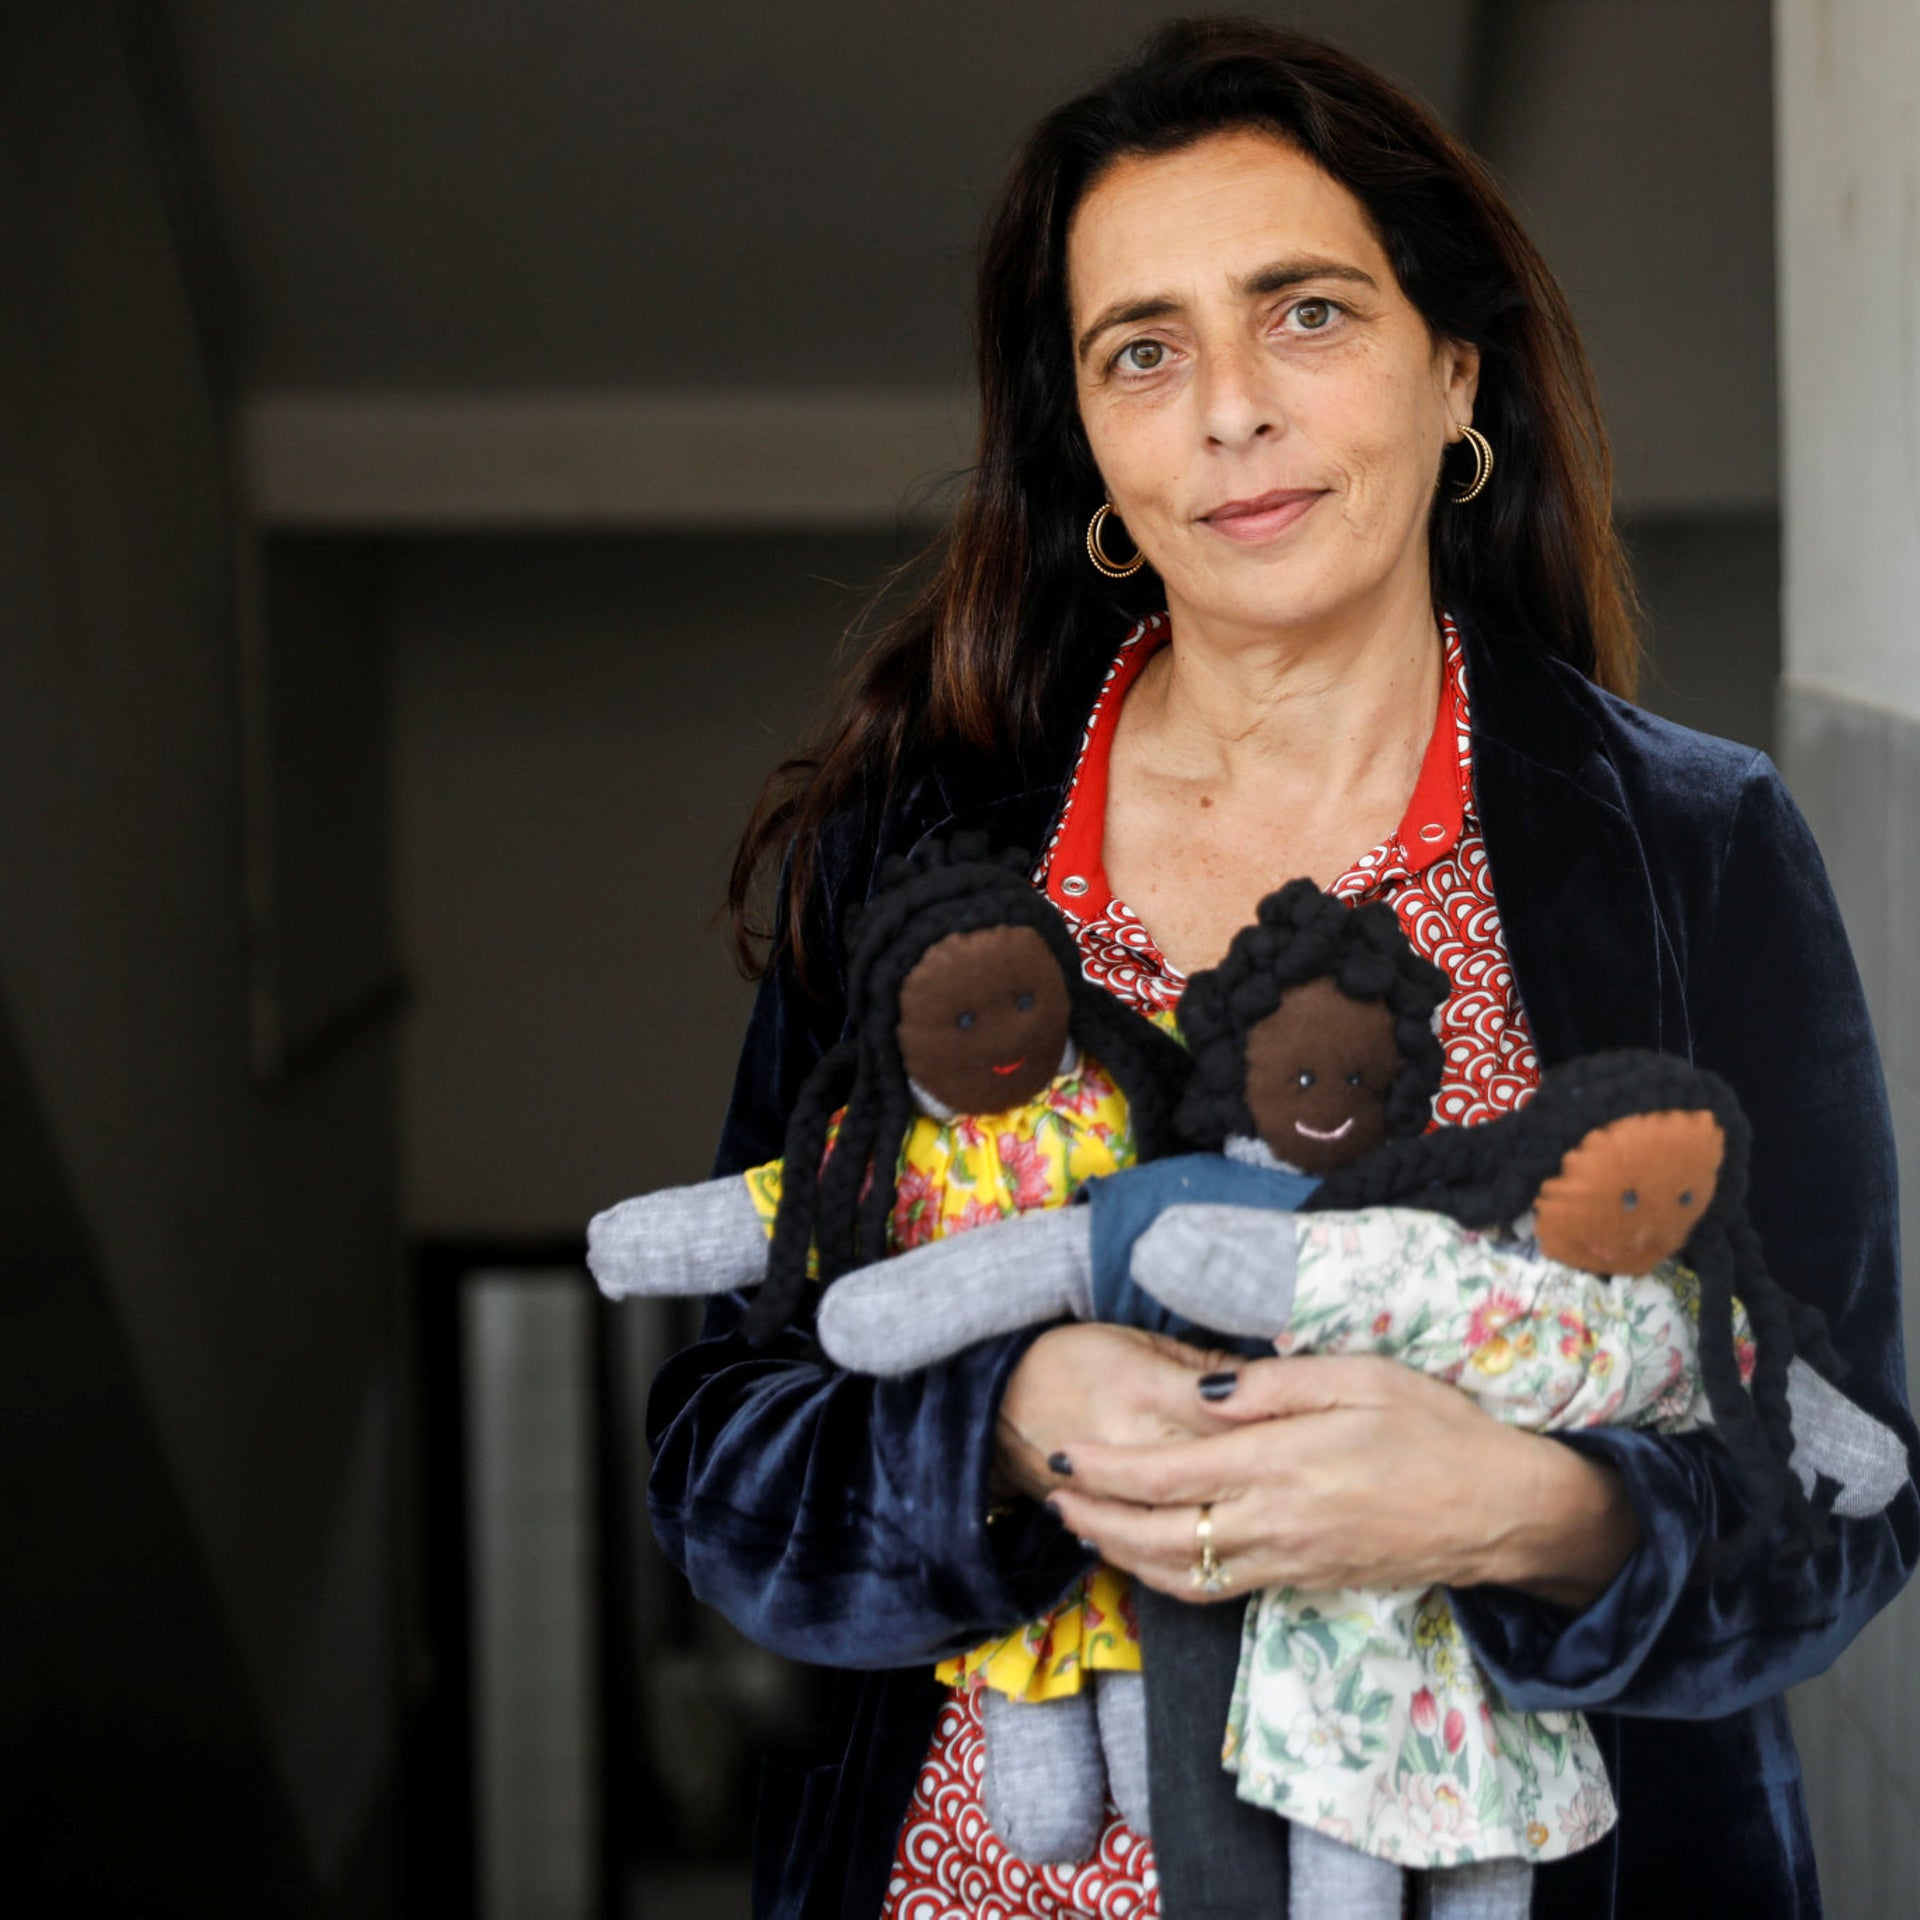 Mymin Kahn, the founder of the project, with the dolls they prepared by asylum seekers.